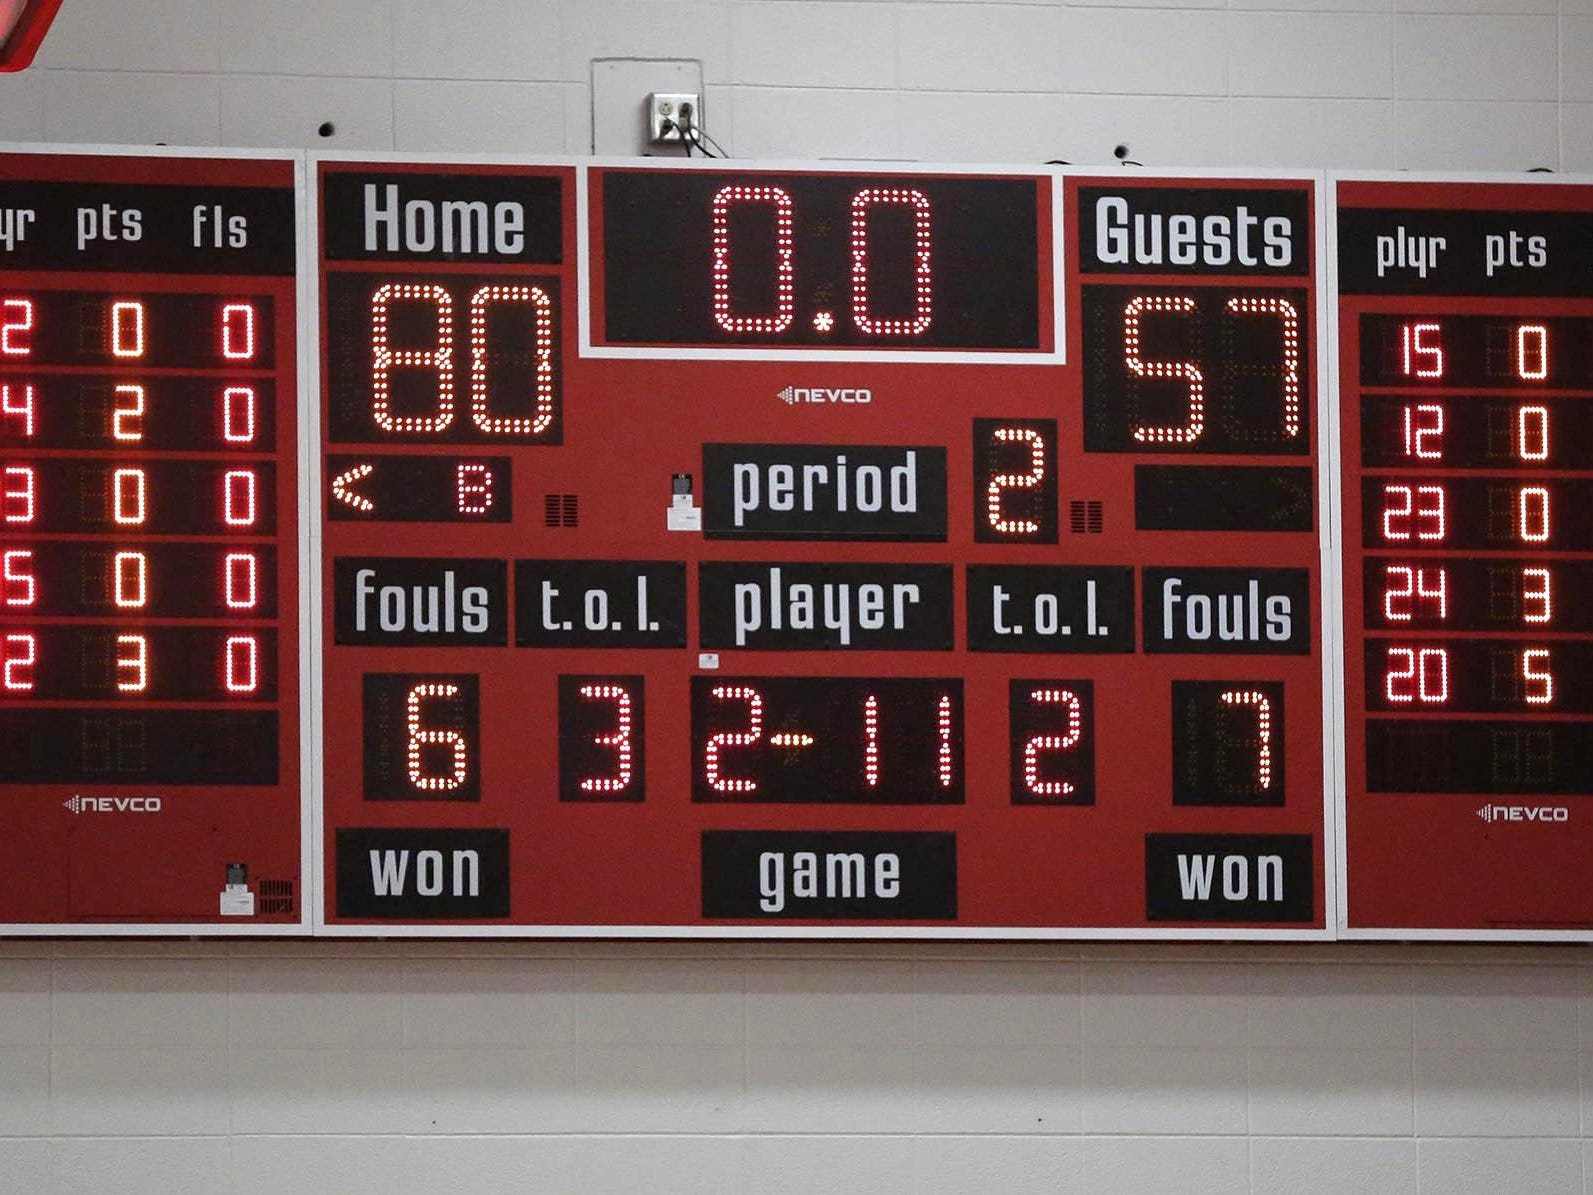 FINAL - Oostburg 80, Manitowoc Lutheran 57, Friday, January 8, 2019, in Oostburg, Wis. Gary C. Klein/USA TODAY NETWORK-Wisconsin